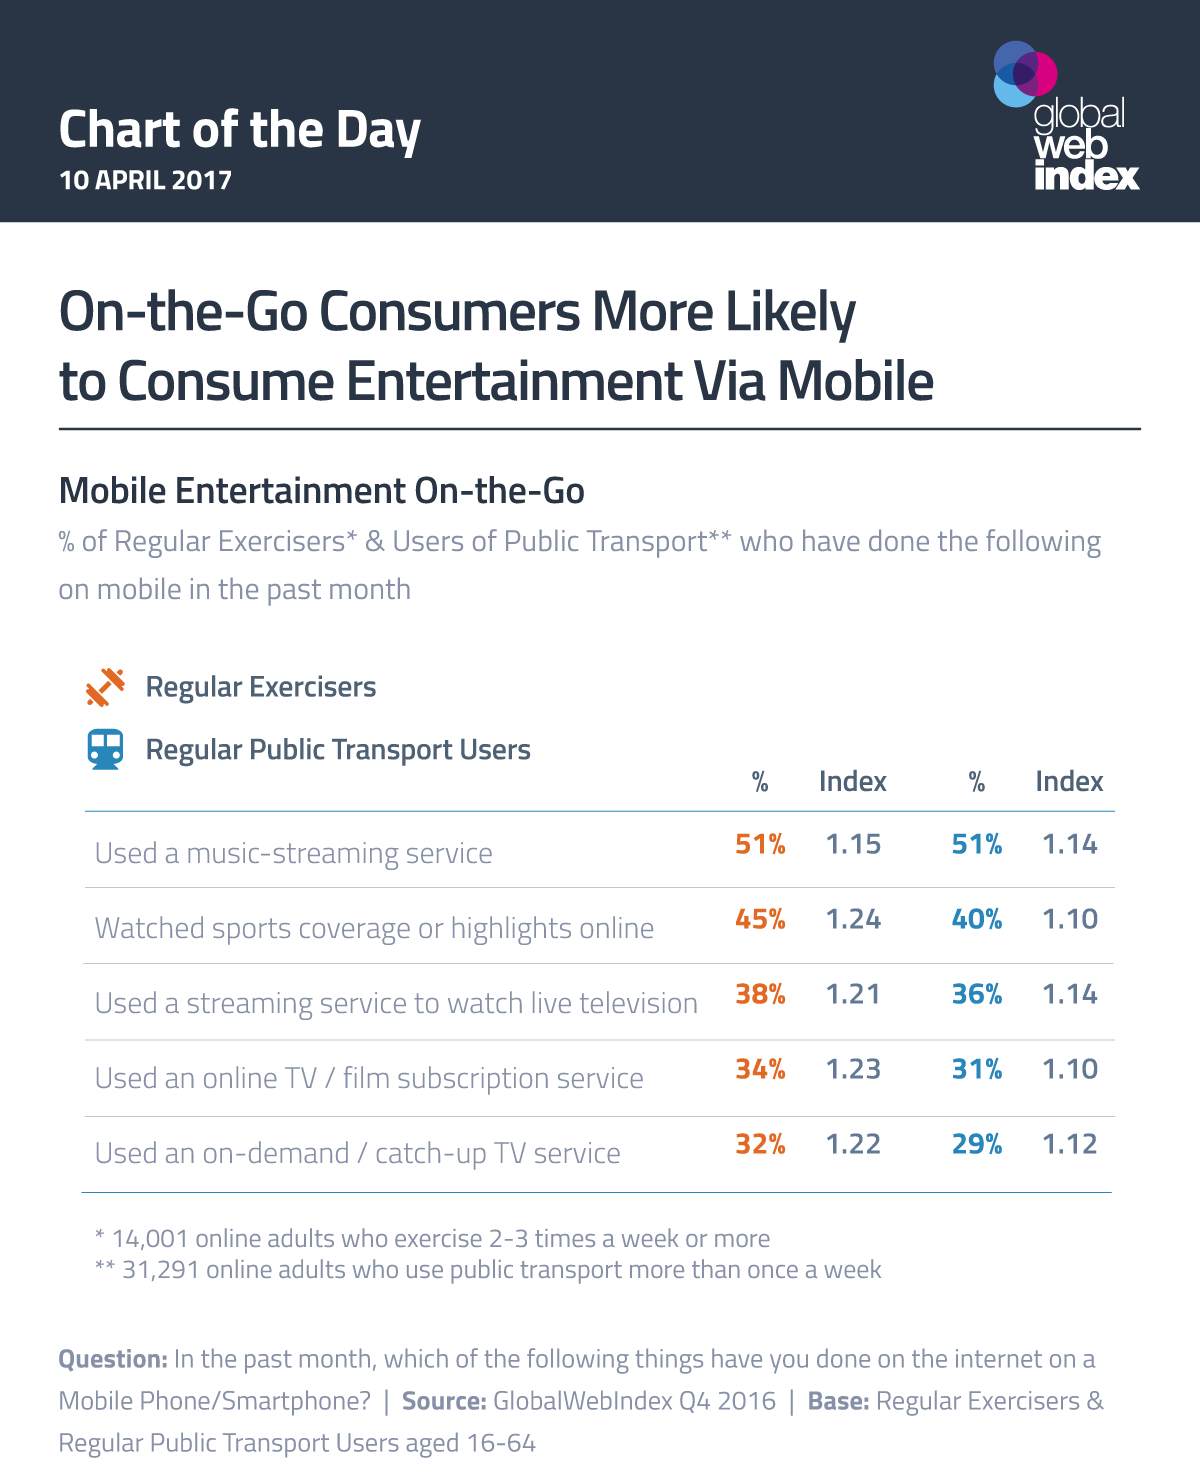 On-the-Go Consumers More Likely to Consume Entertainment Via Mobile